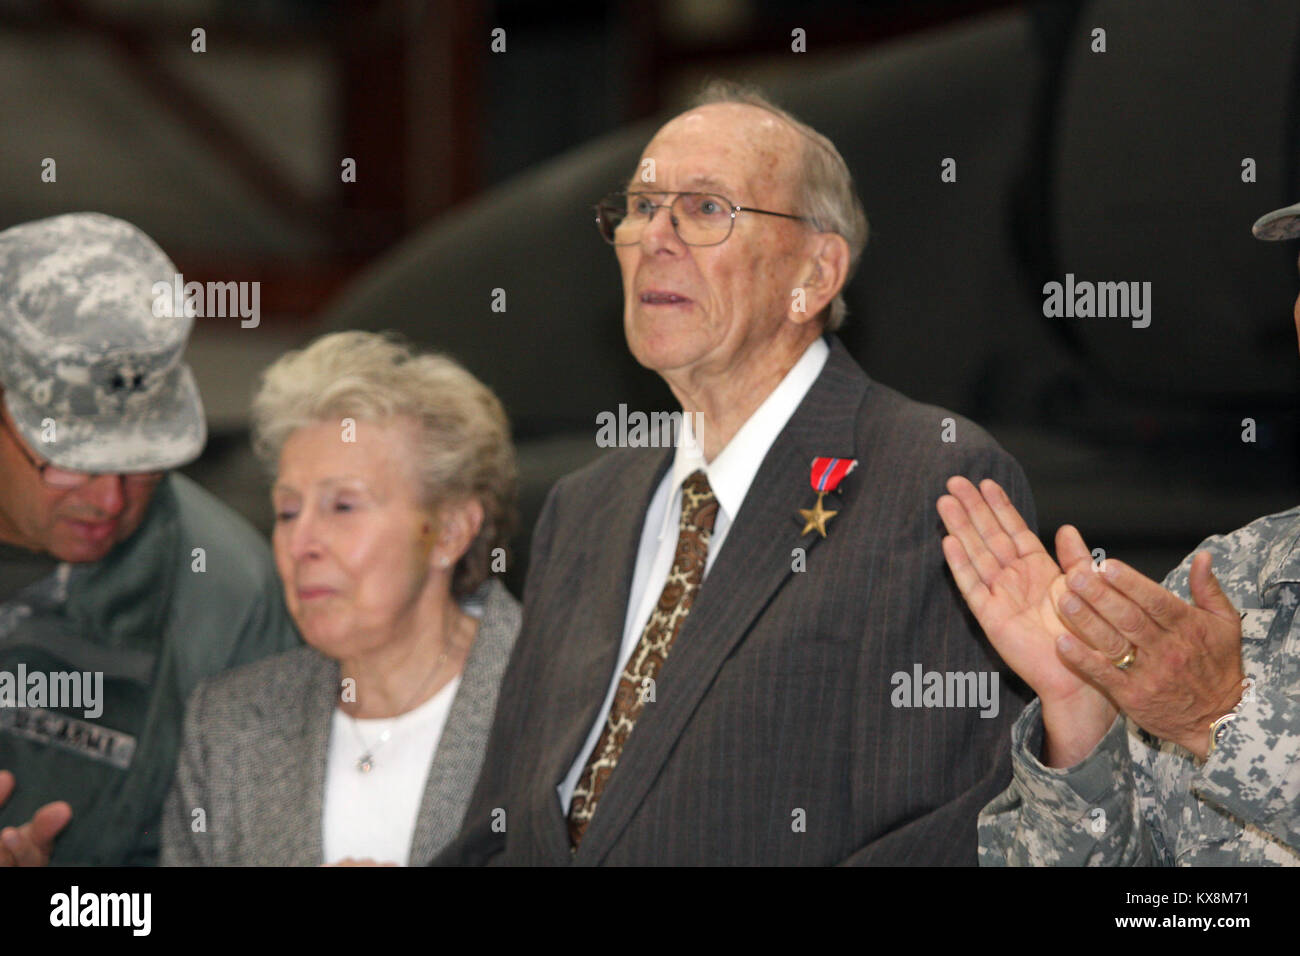 Richard Johnson, a World War II veteran who served in the European Theater of Operations as an infantry machine - Stock Image